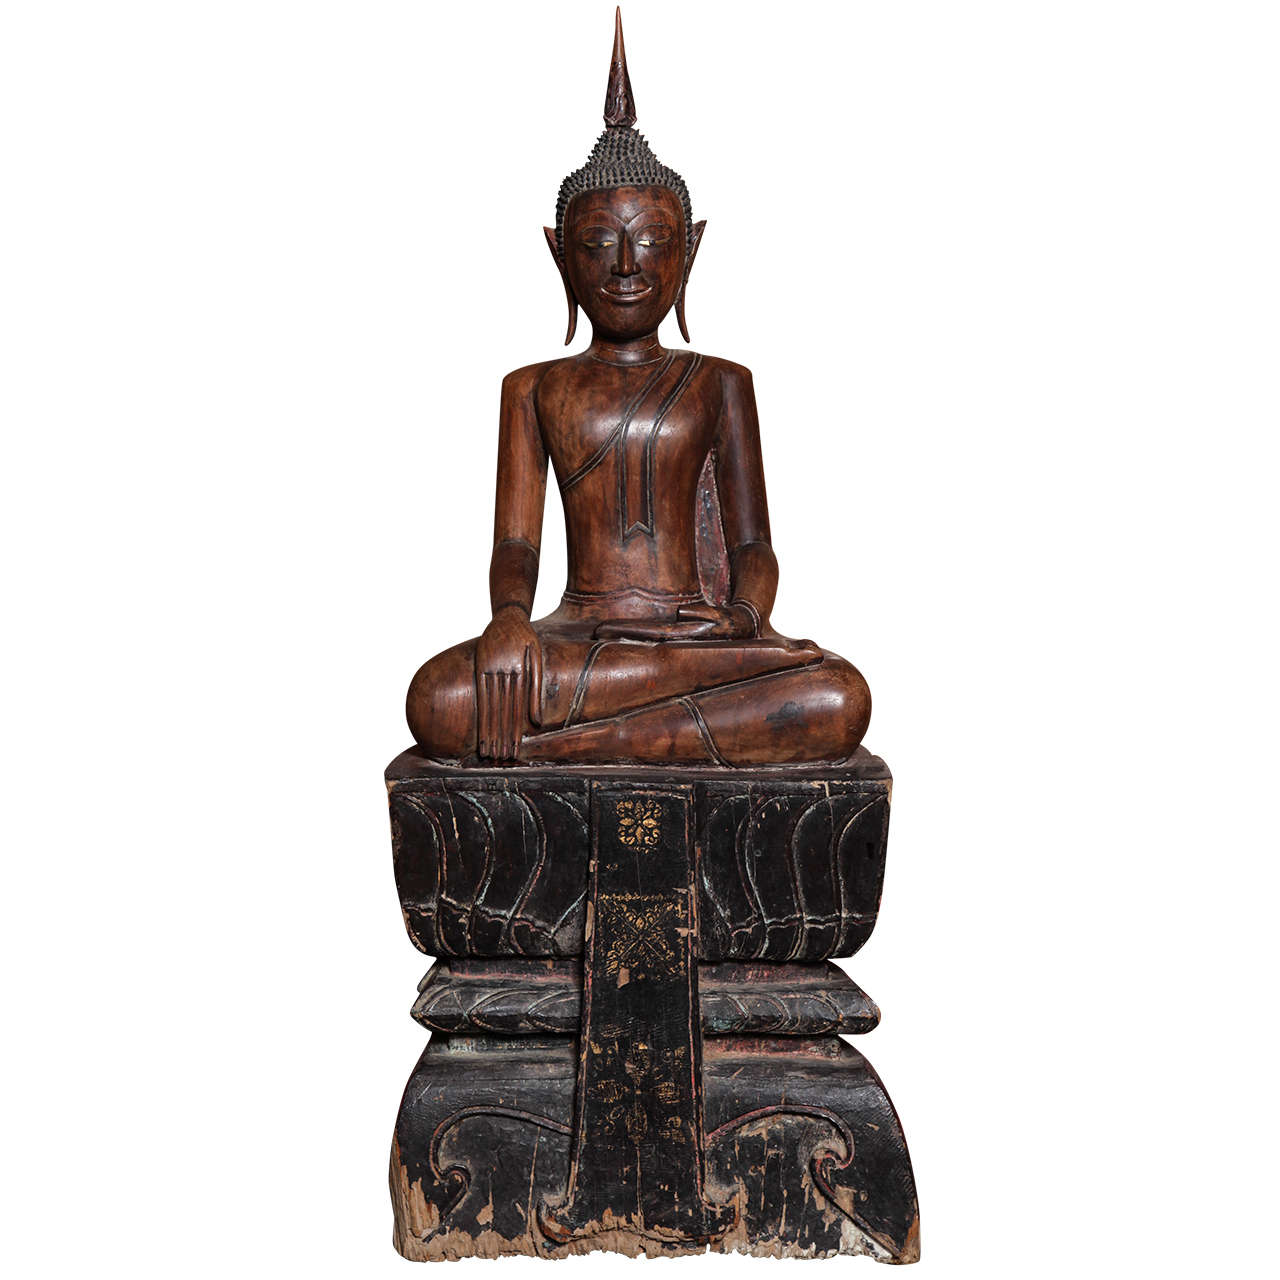 Antique Painted Teak Seated Buddha from Thailand, 17th-18th Century